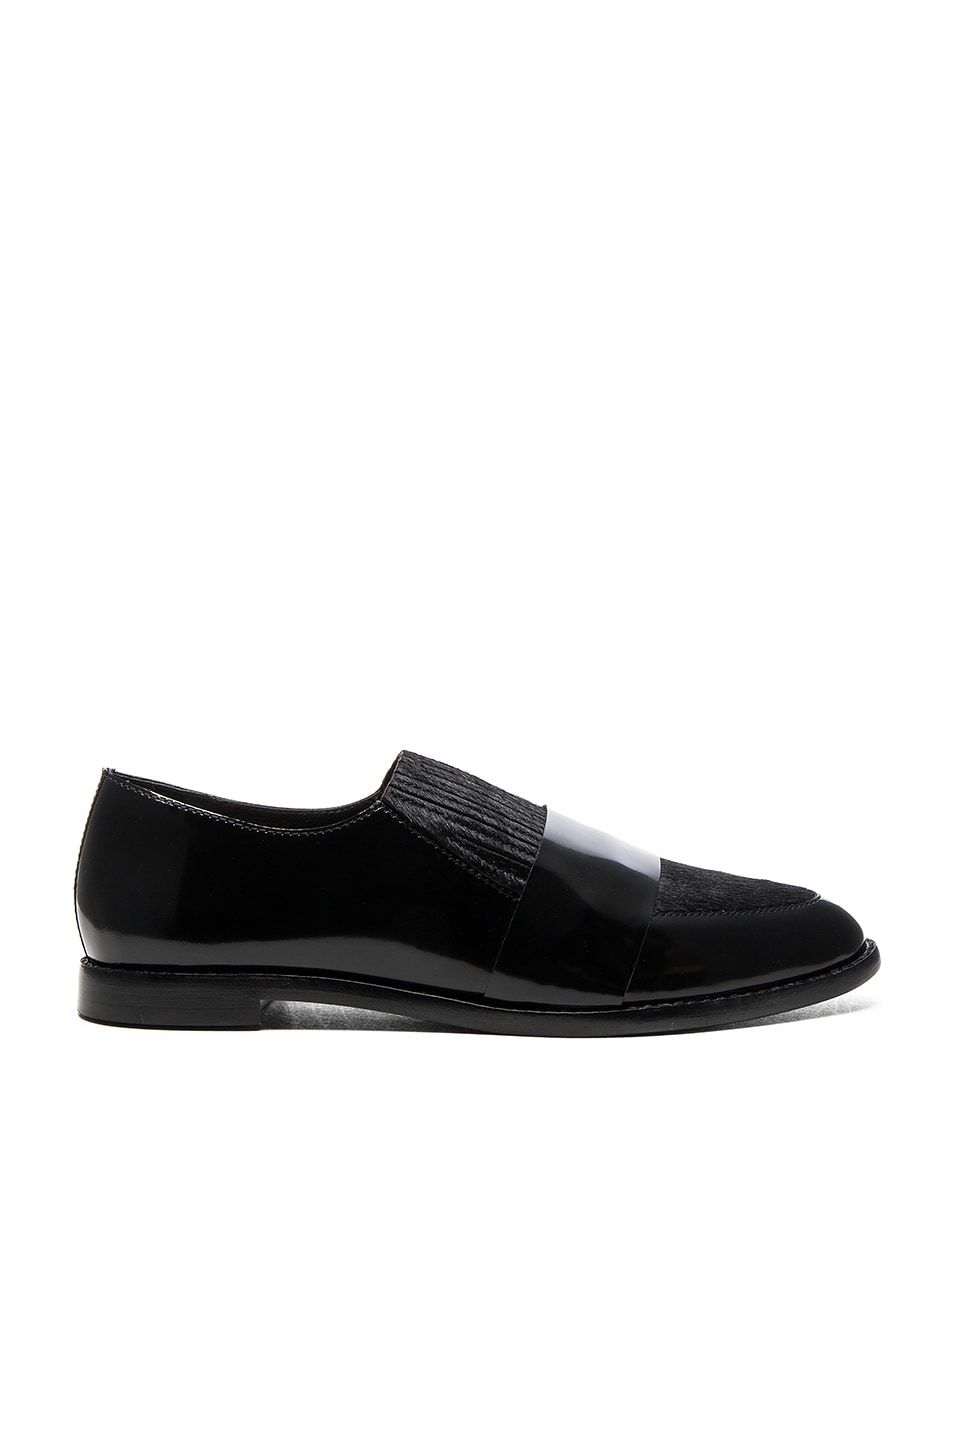 Loeffler Randall Rosa Calf Hair Loafer in Black